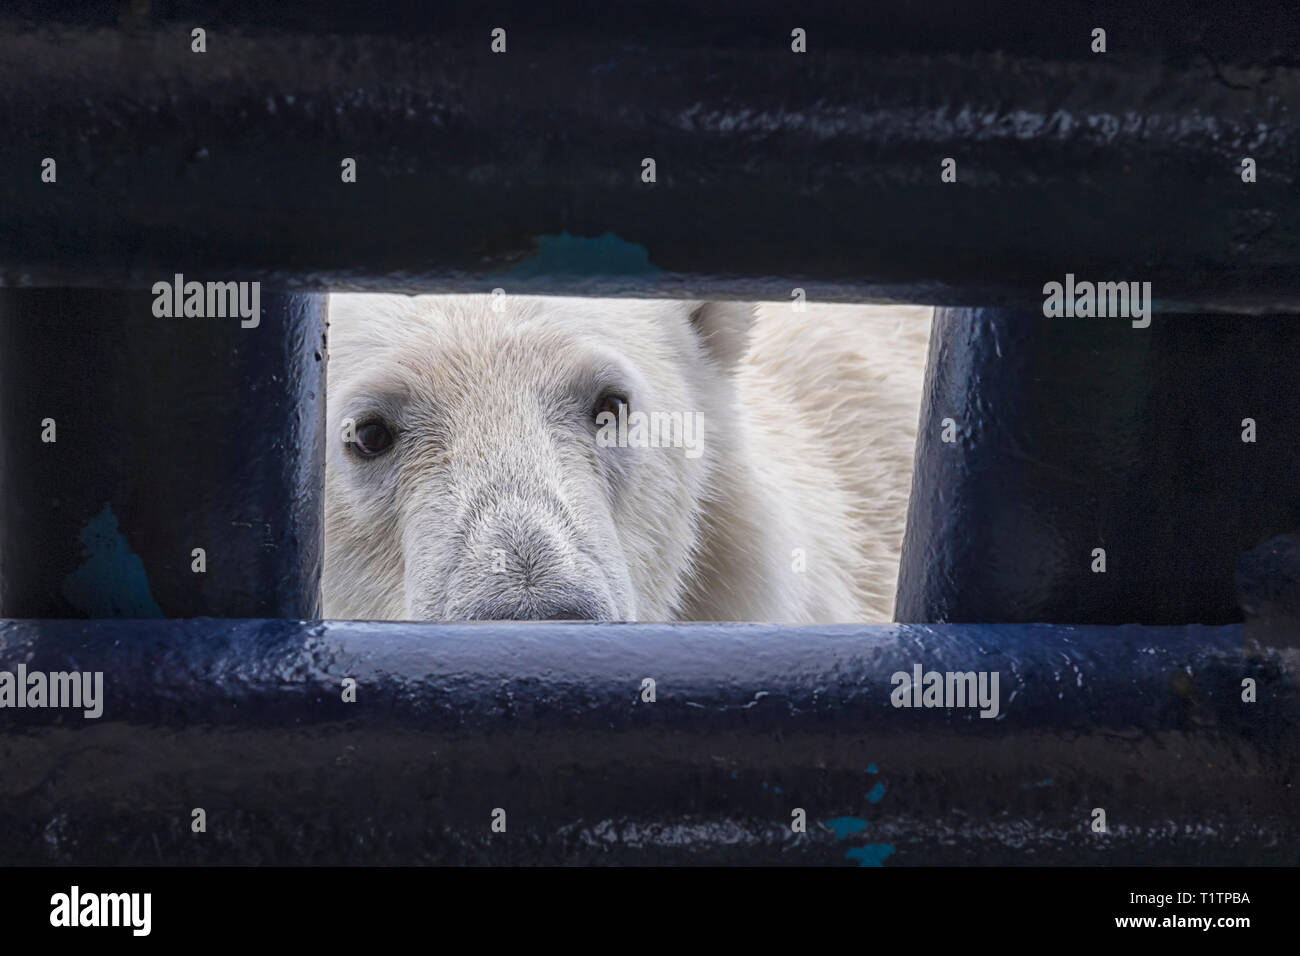 Polar Bear (Ursus maritimus) looking through opening in ship's deck, Svalbard Archipelago, Norway - Stock Image